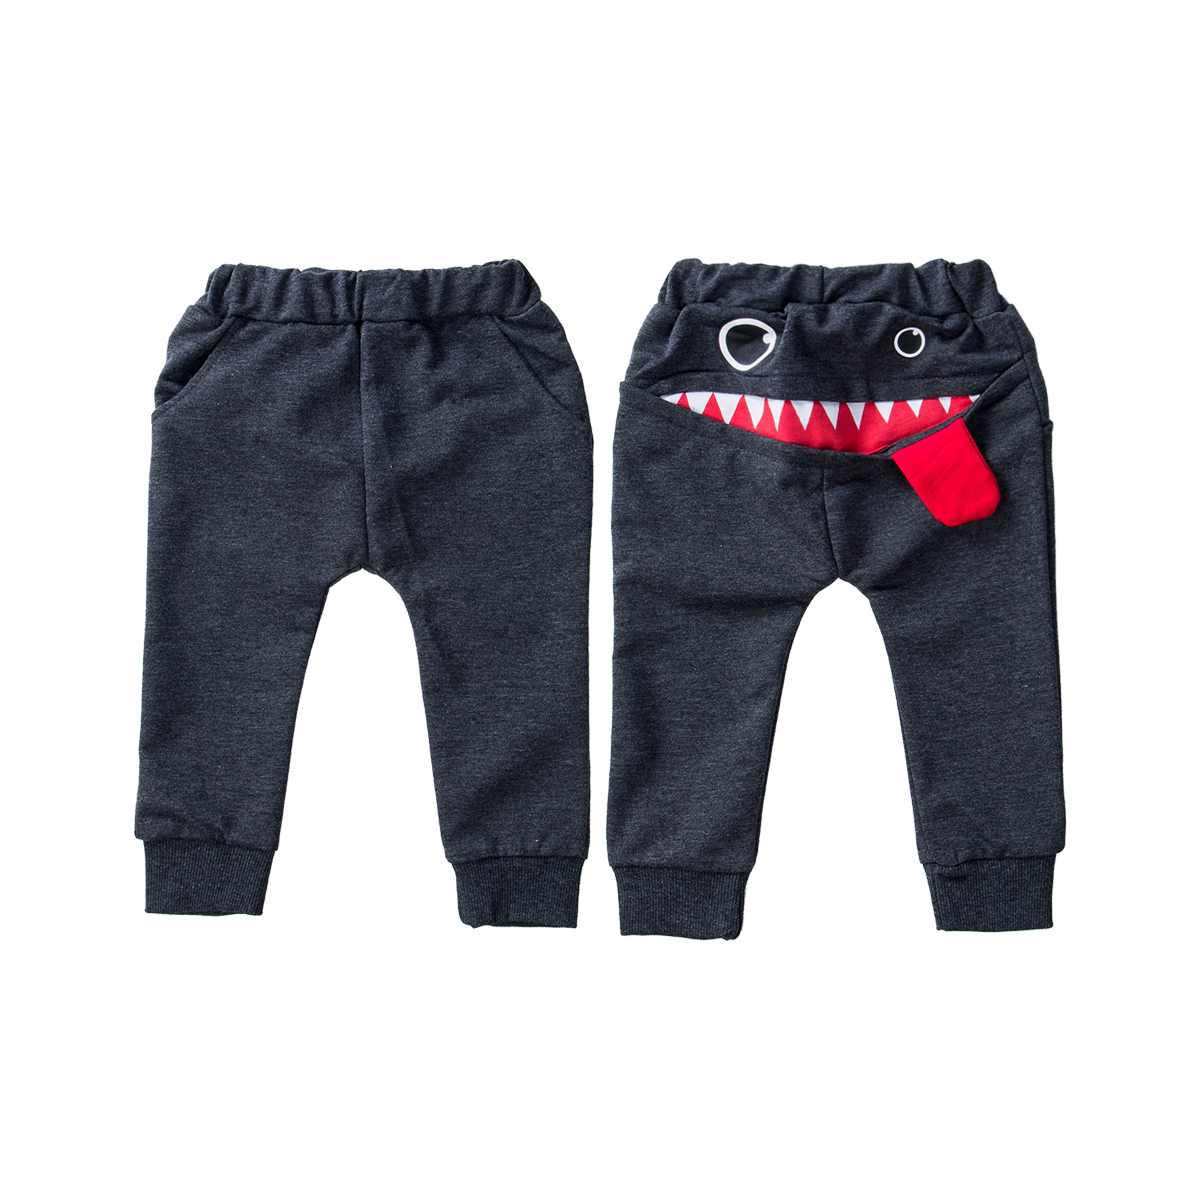 Baby Boys Big Mouth Monster Print Long Pants Bottom Joggy Leggings Toddler Kids Boys Trousers Cotton Baggy Jogger Clothes 0-4Y